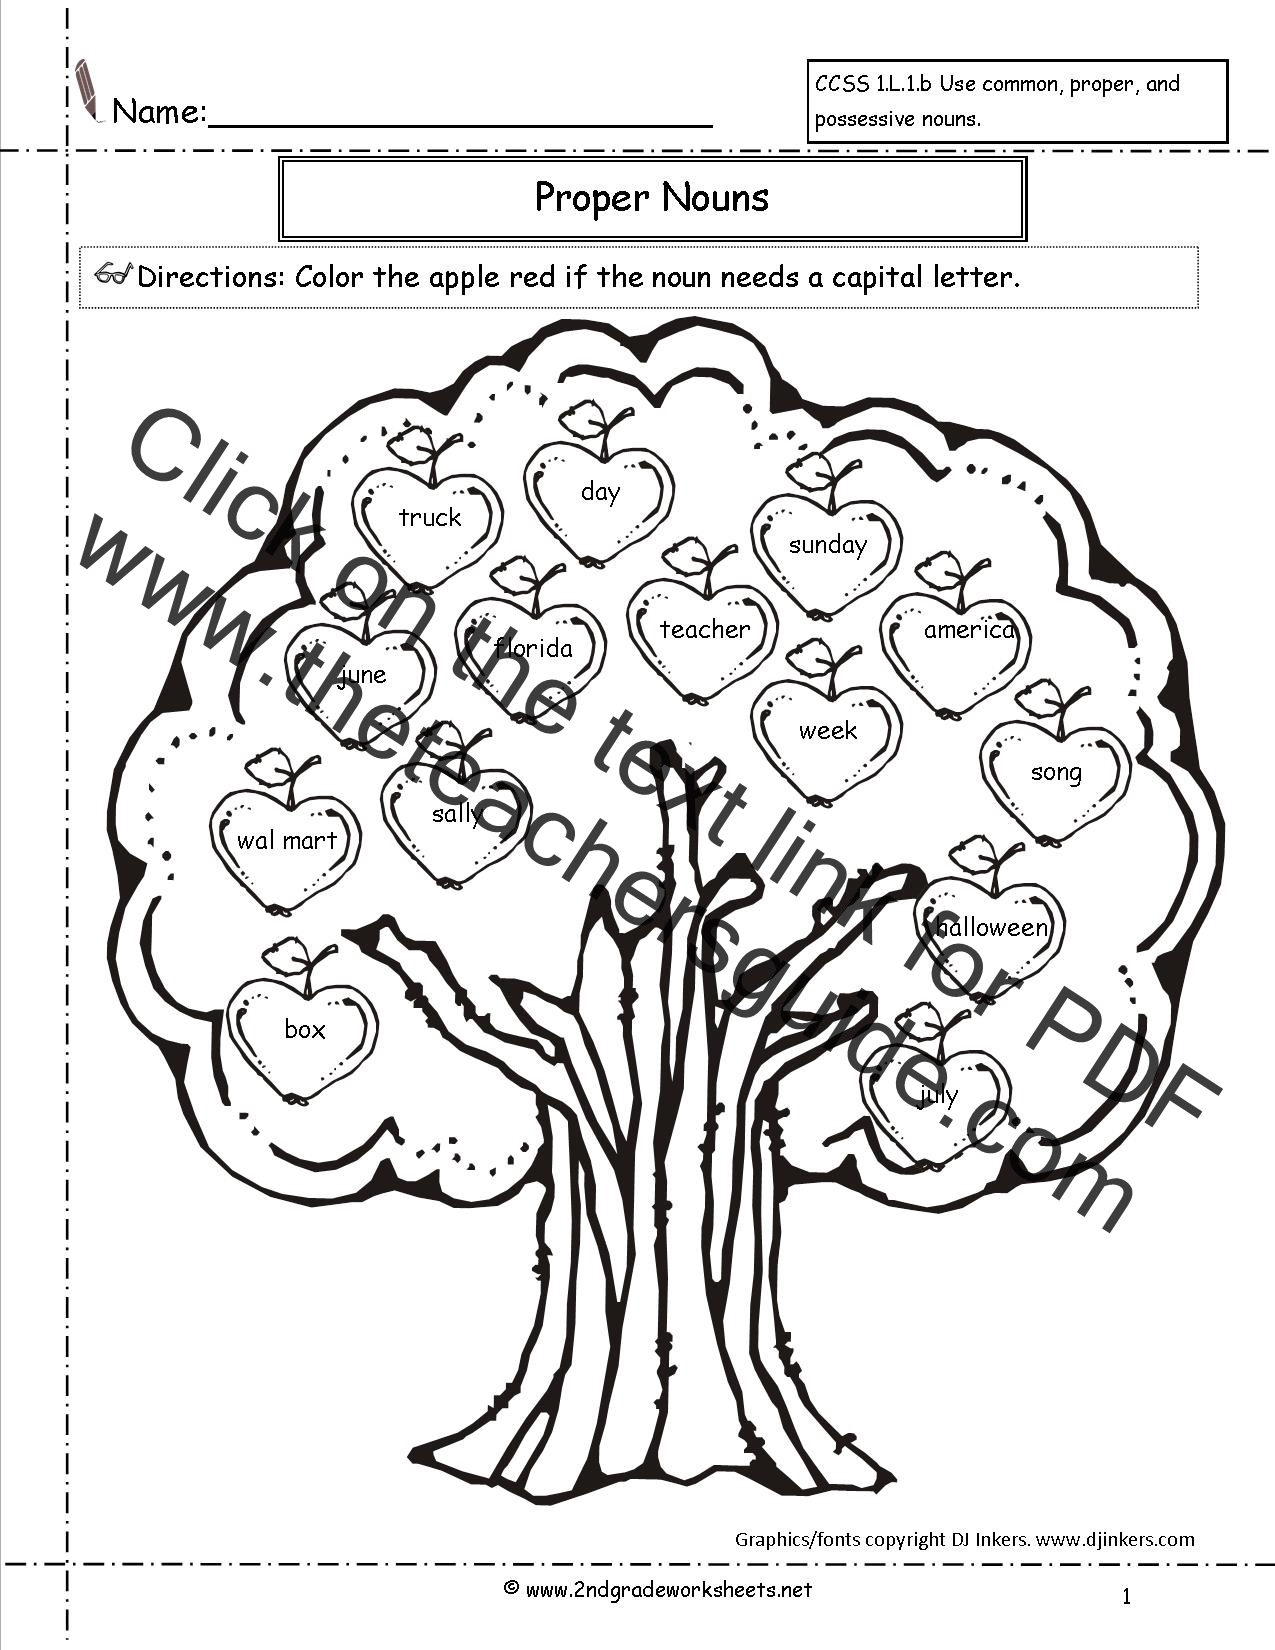 2ndgradeworksheets